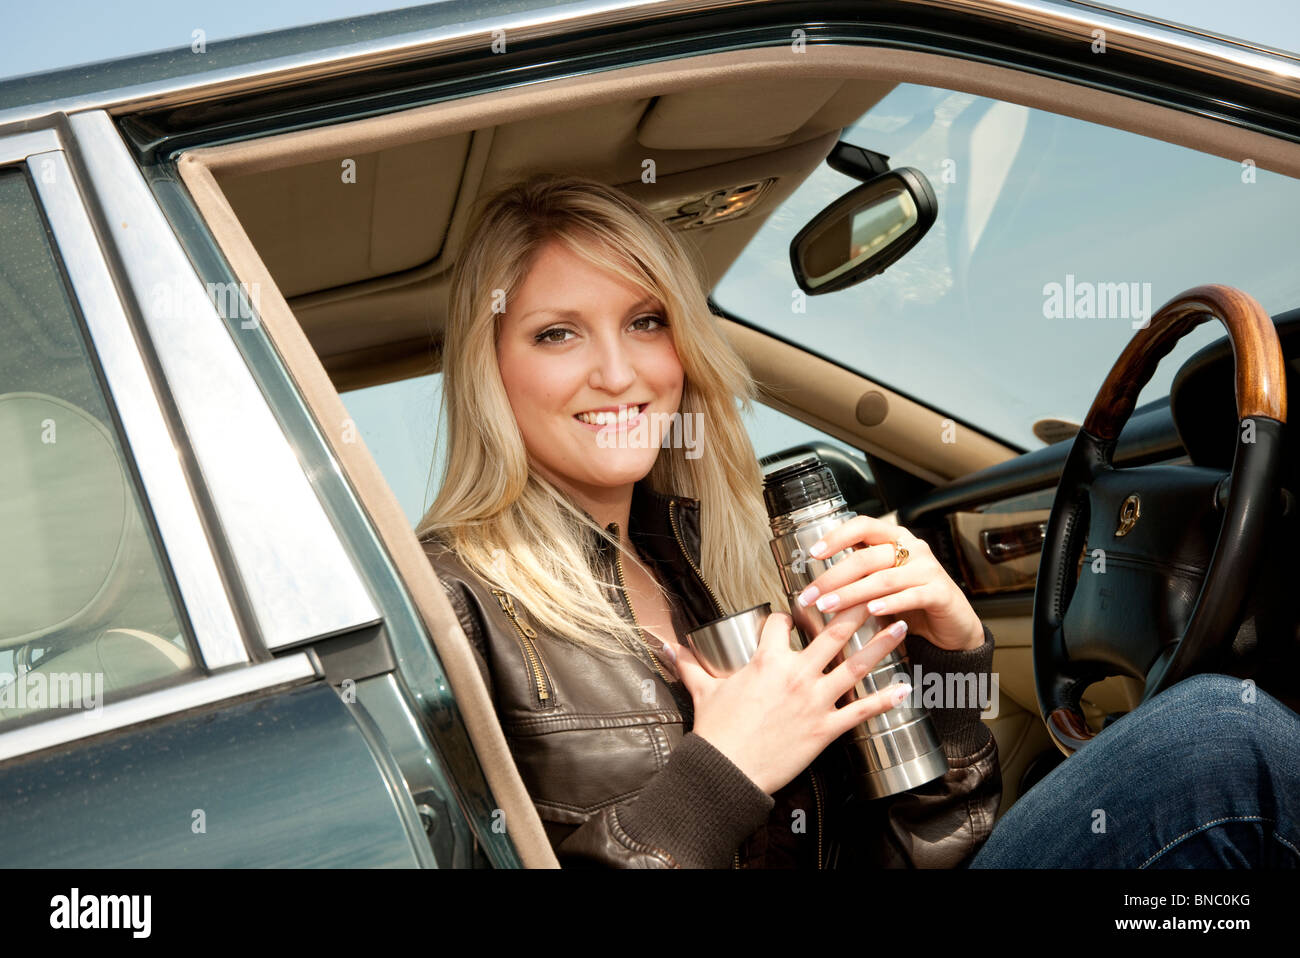 blonde woman sitting in parked car drinking tea thermos flask - Stock Image